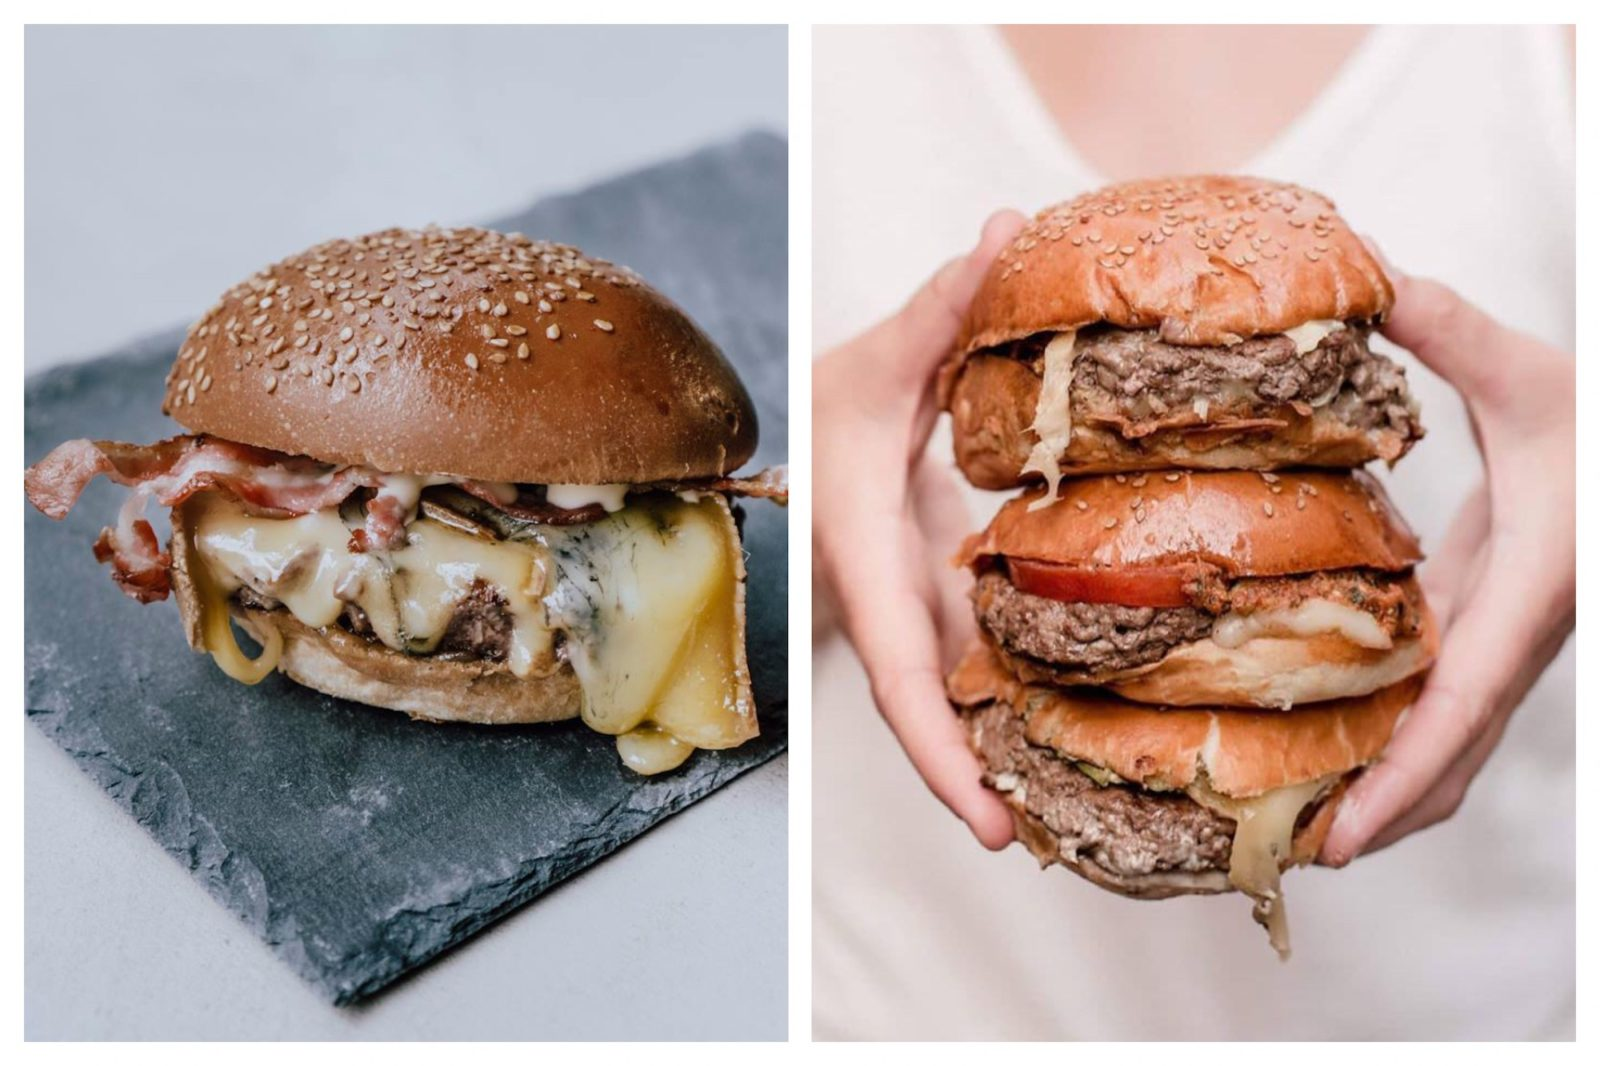 The place to go for an organic burger in Paris is Bio Burger for its generously filled buns with melted cheese and bacon served on slate boards (left). Or you can go for the straight-forward juicy beef burger like one of these three, which this girl is holding stacked together (right).